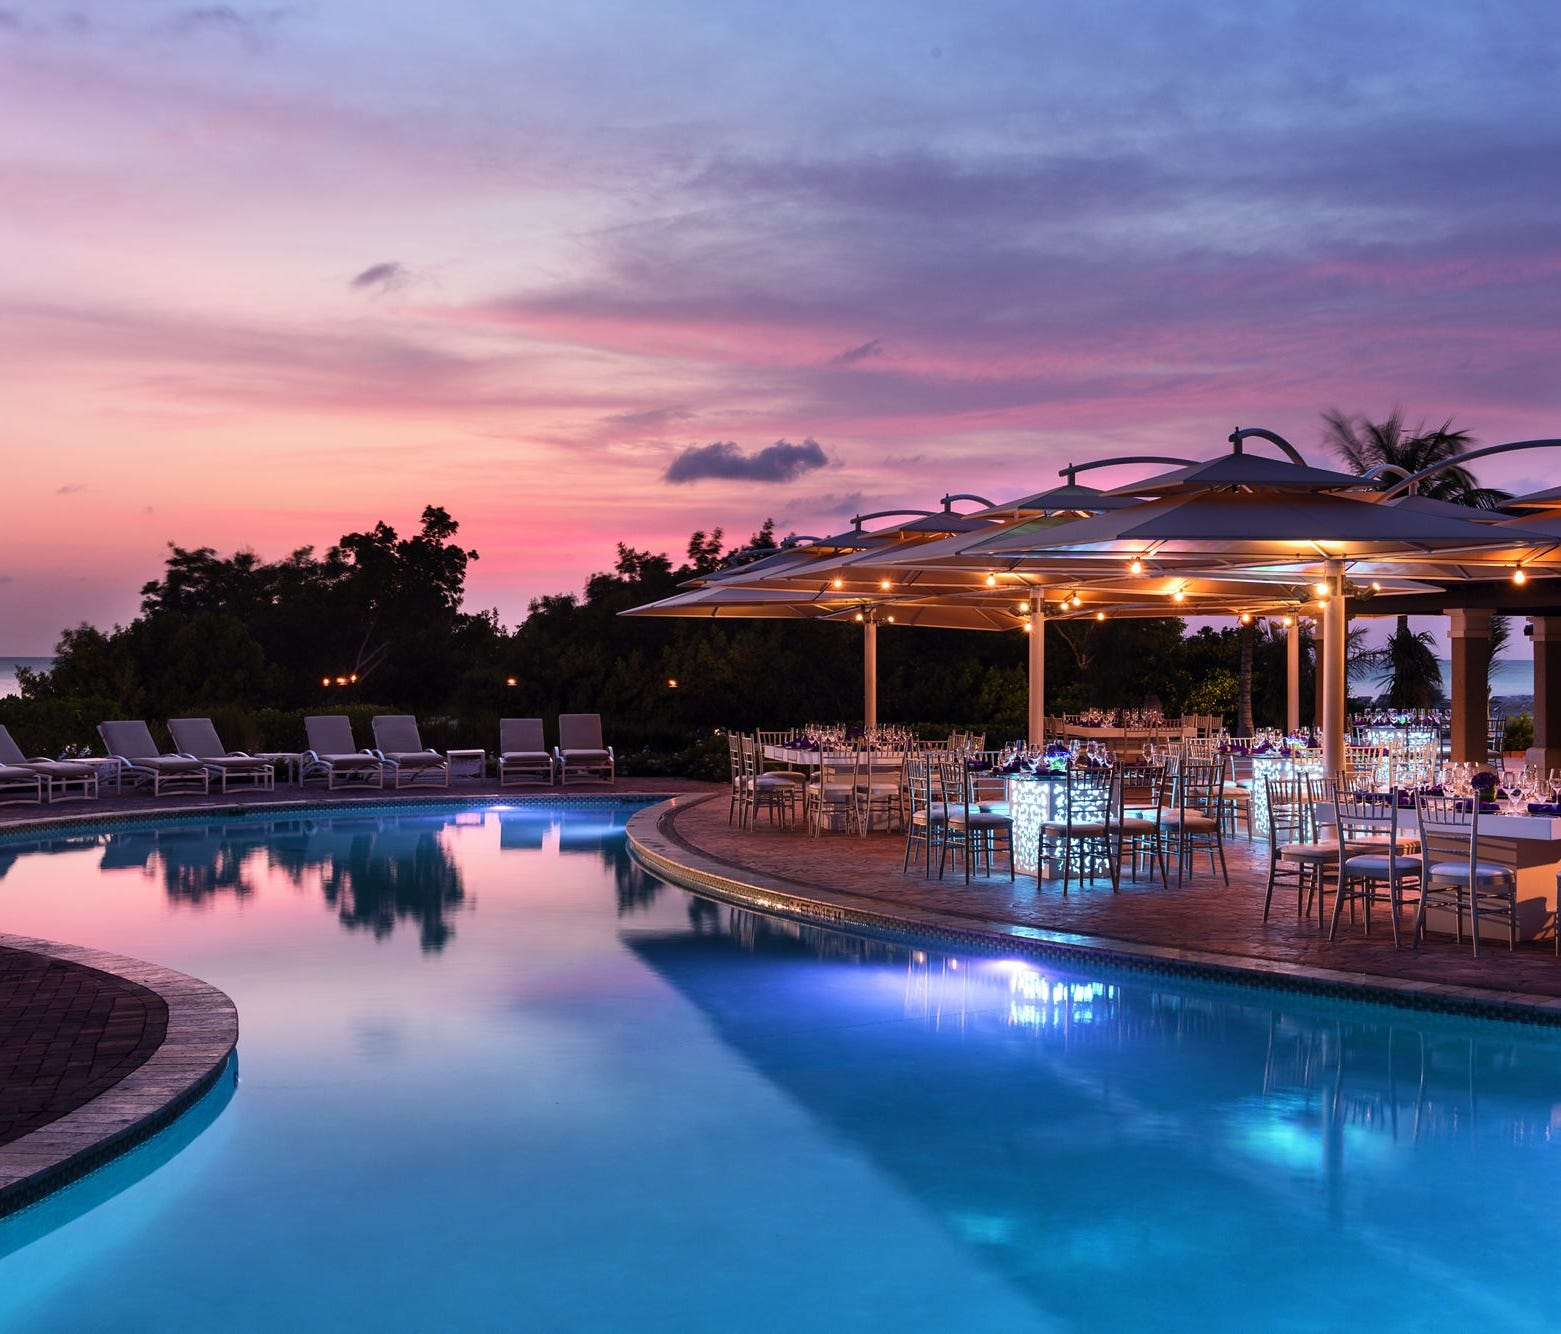 The 320-room Ritz Carlton, Aruba has four restaurants, including BLT Steak, as well as a spa, casino and two swimming pools.